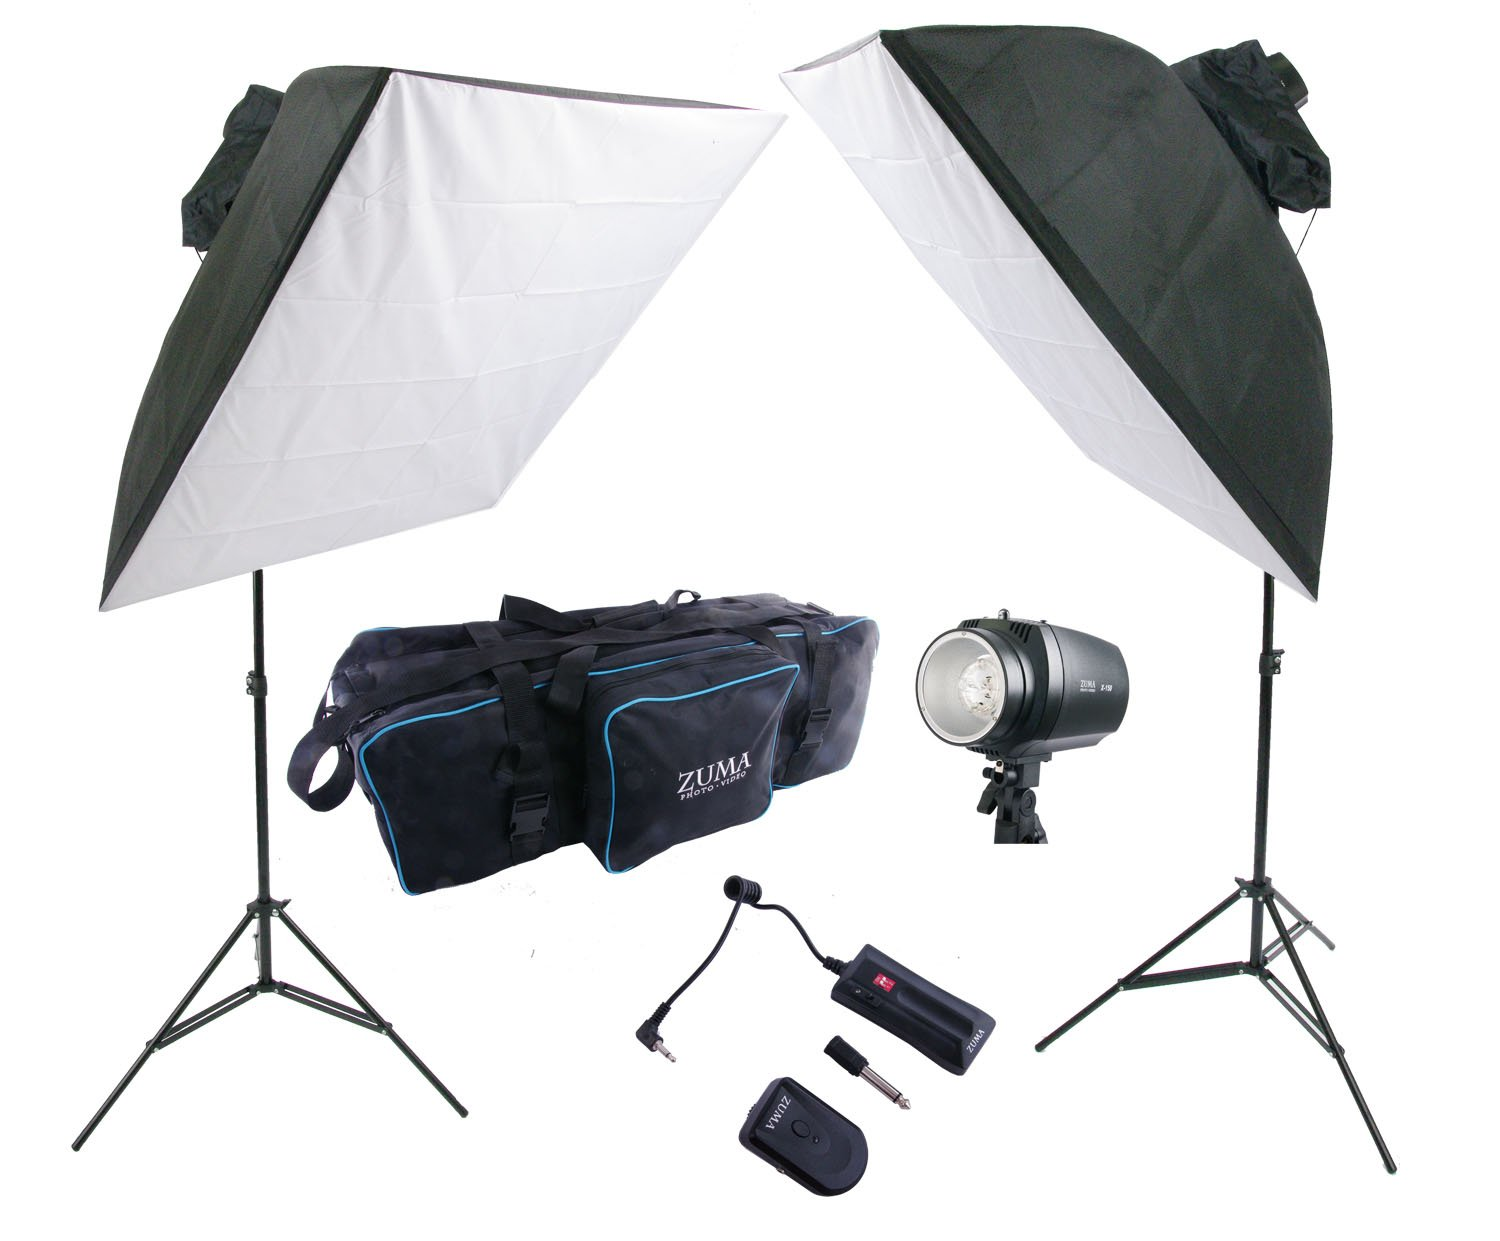 300W Photo Studio Strobe Flash Monolight Light Kit Softbox Umbrella Stand Bag by Zuma